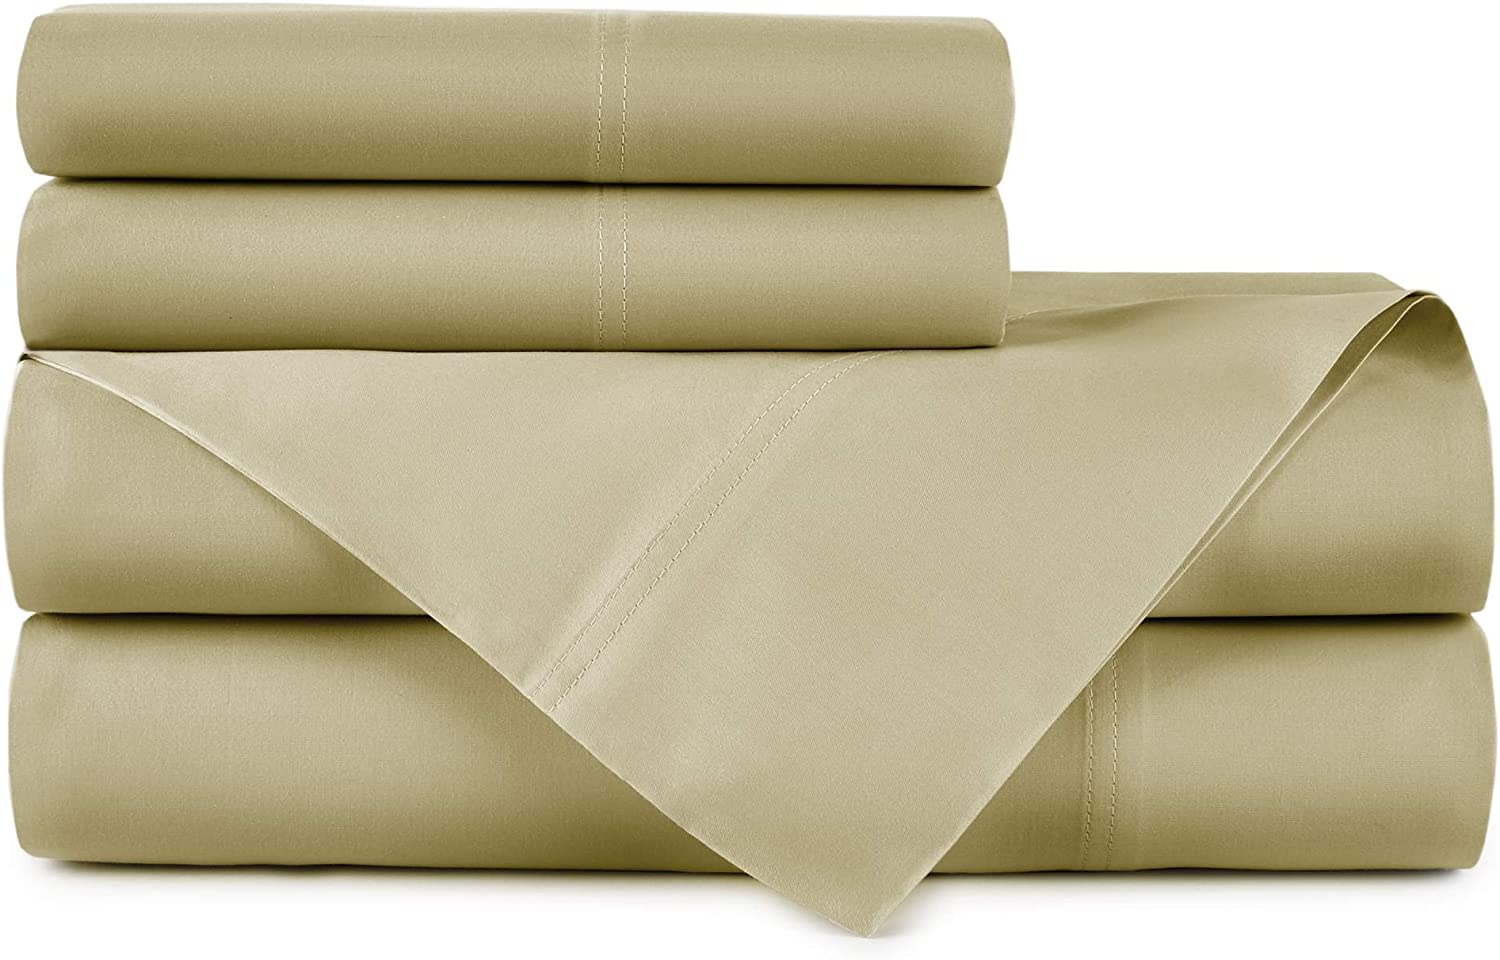 Peacock Alley Emily 100% Egyptian Cotton Sheet Set | Dream at Home Collection | 500 Thread Count Sateen Sheets | King & Queen Size Beds | Great Color Options (Mushroom, Queen Set)